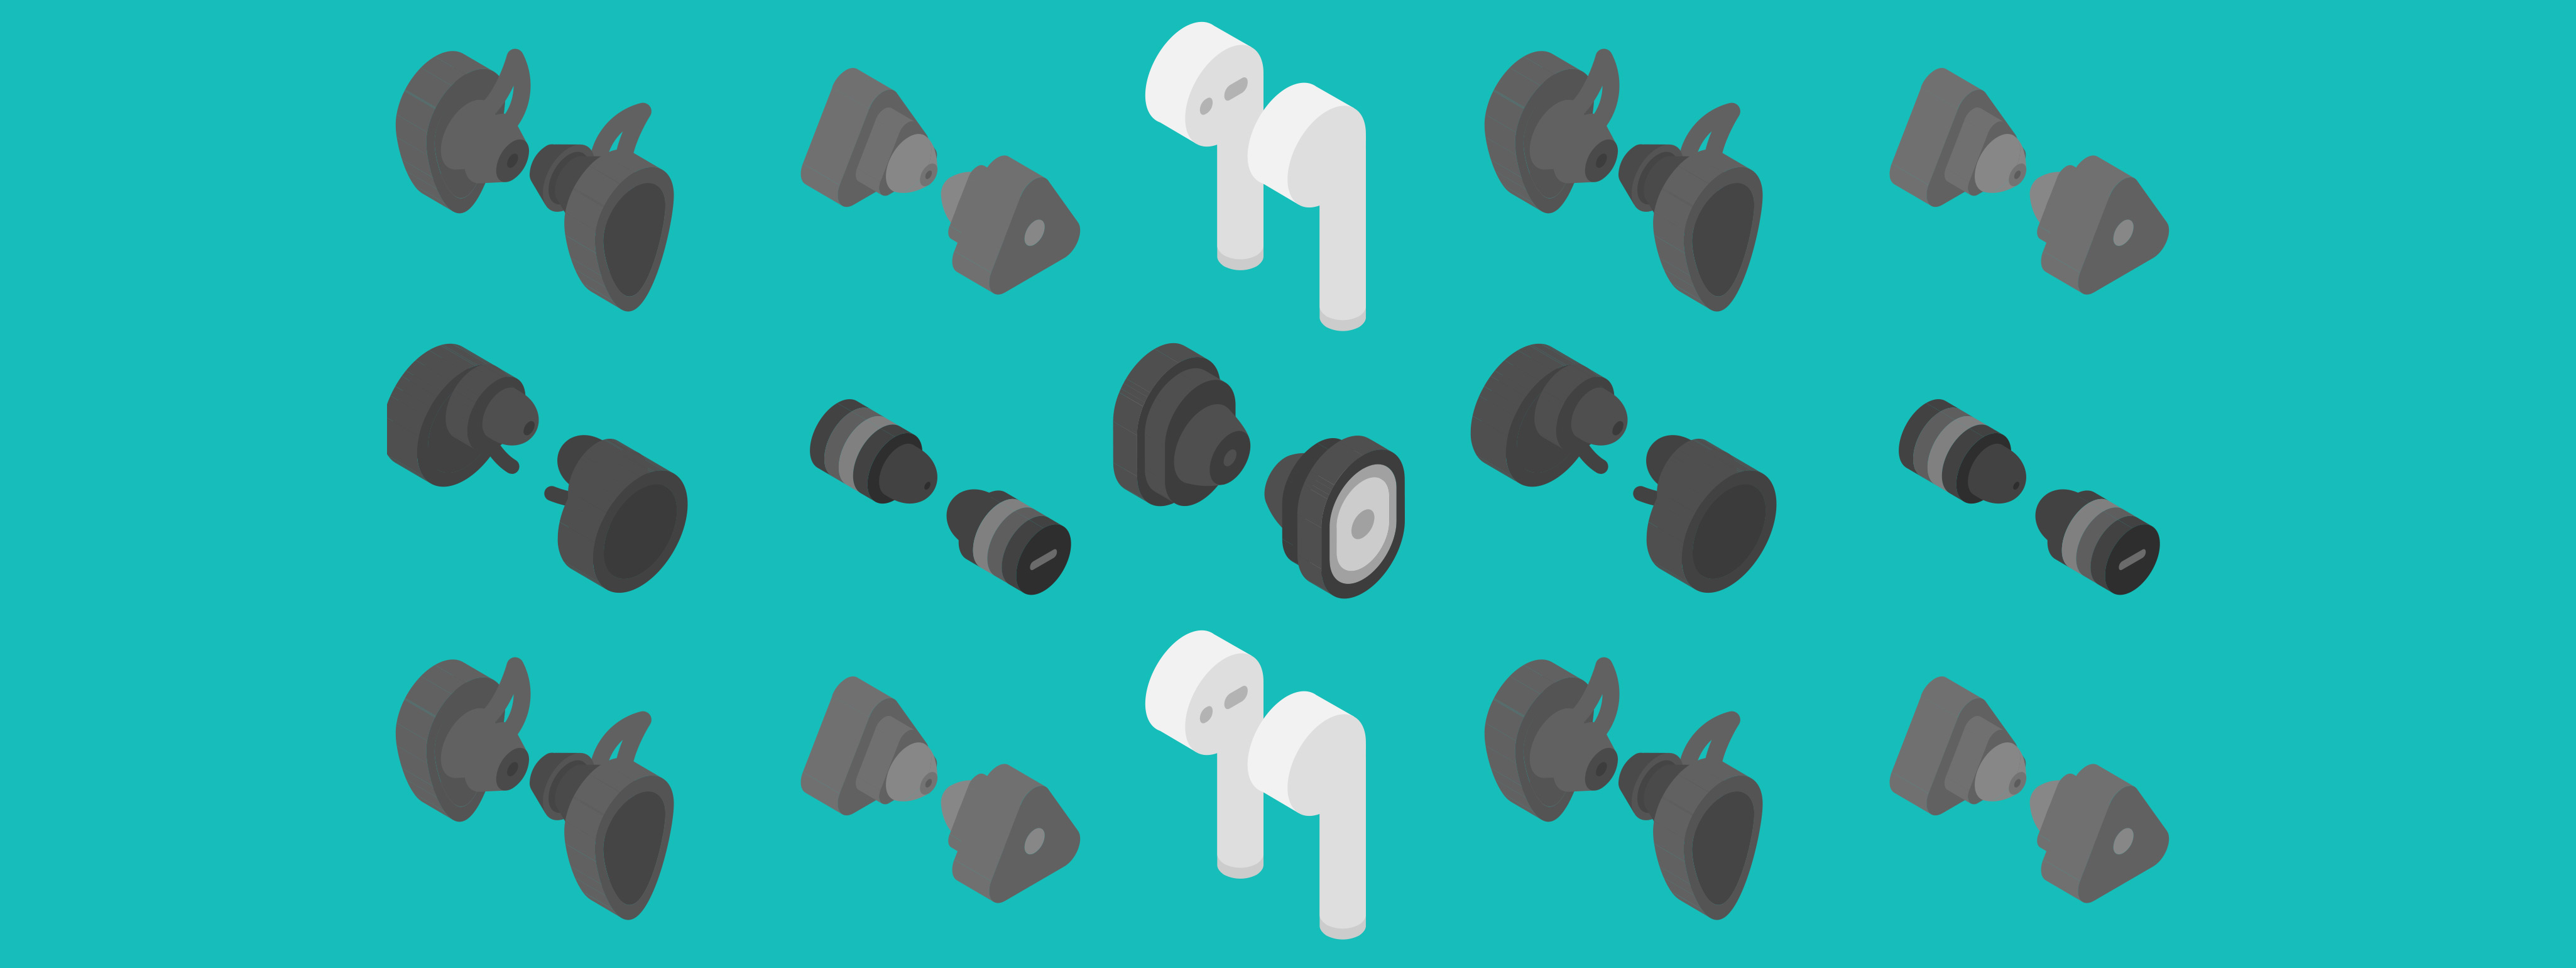 A pattern of various earbuds and headphones.